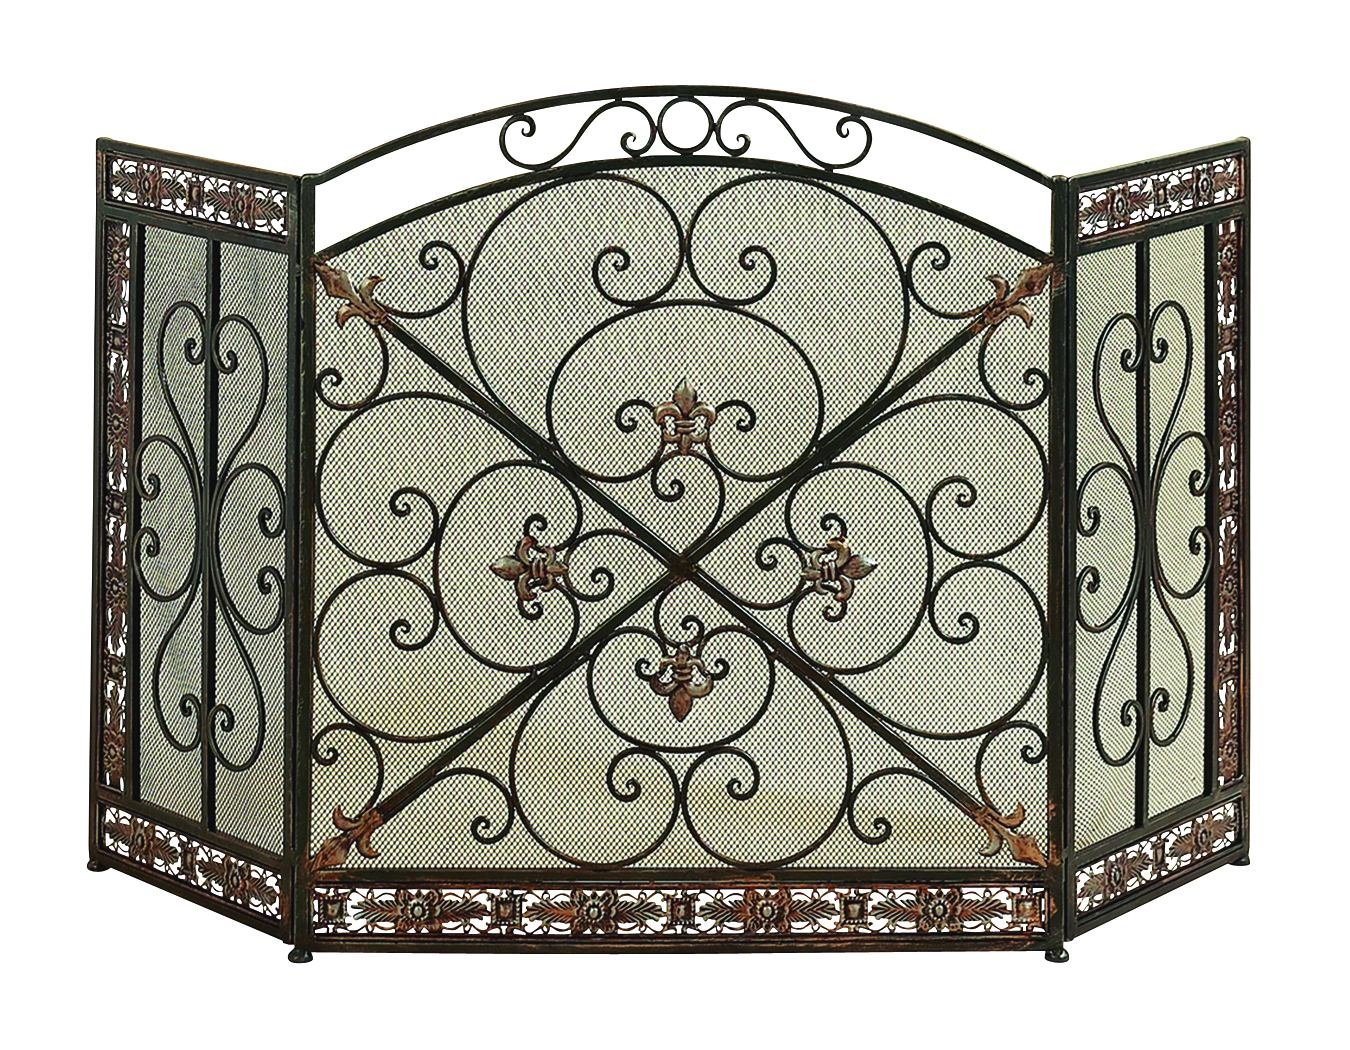 Deco 79 71822 Metal Fire Screen,, 52